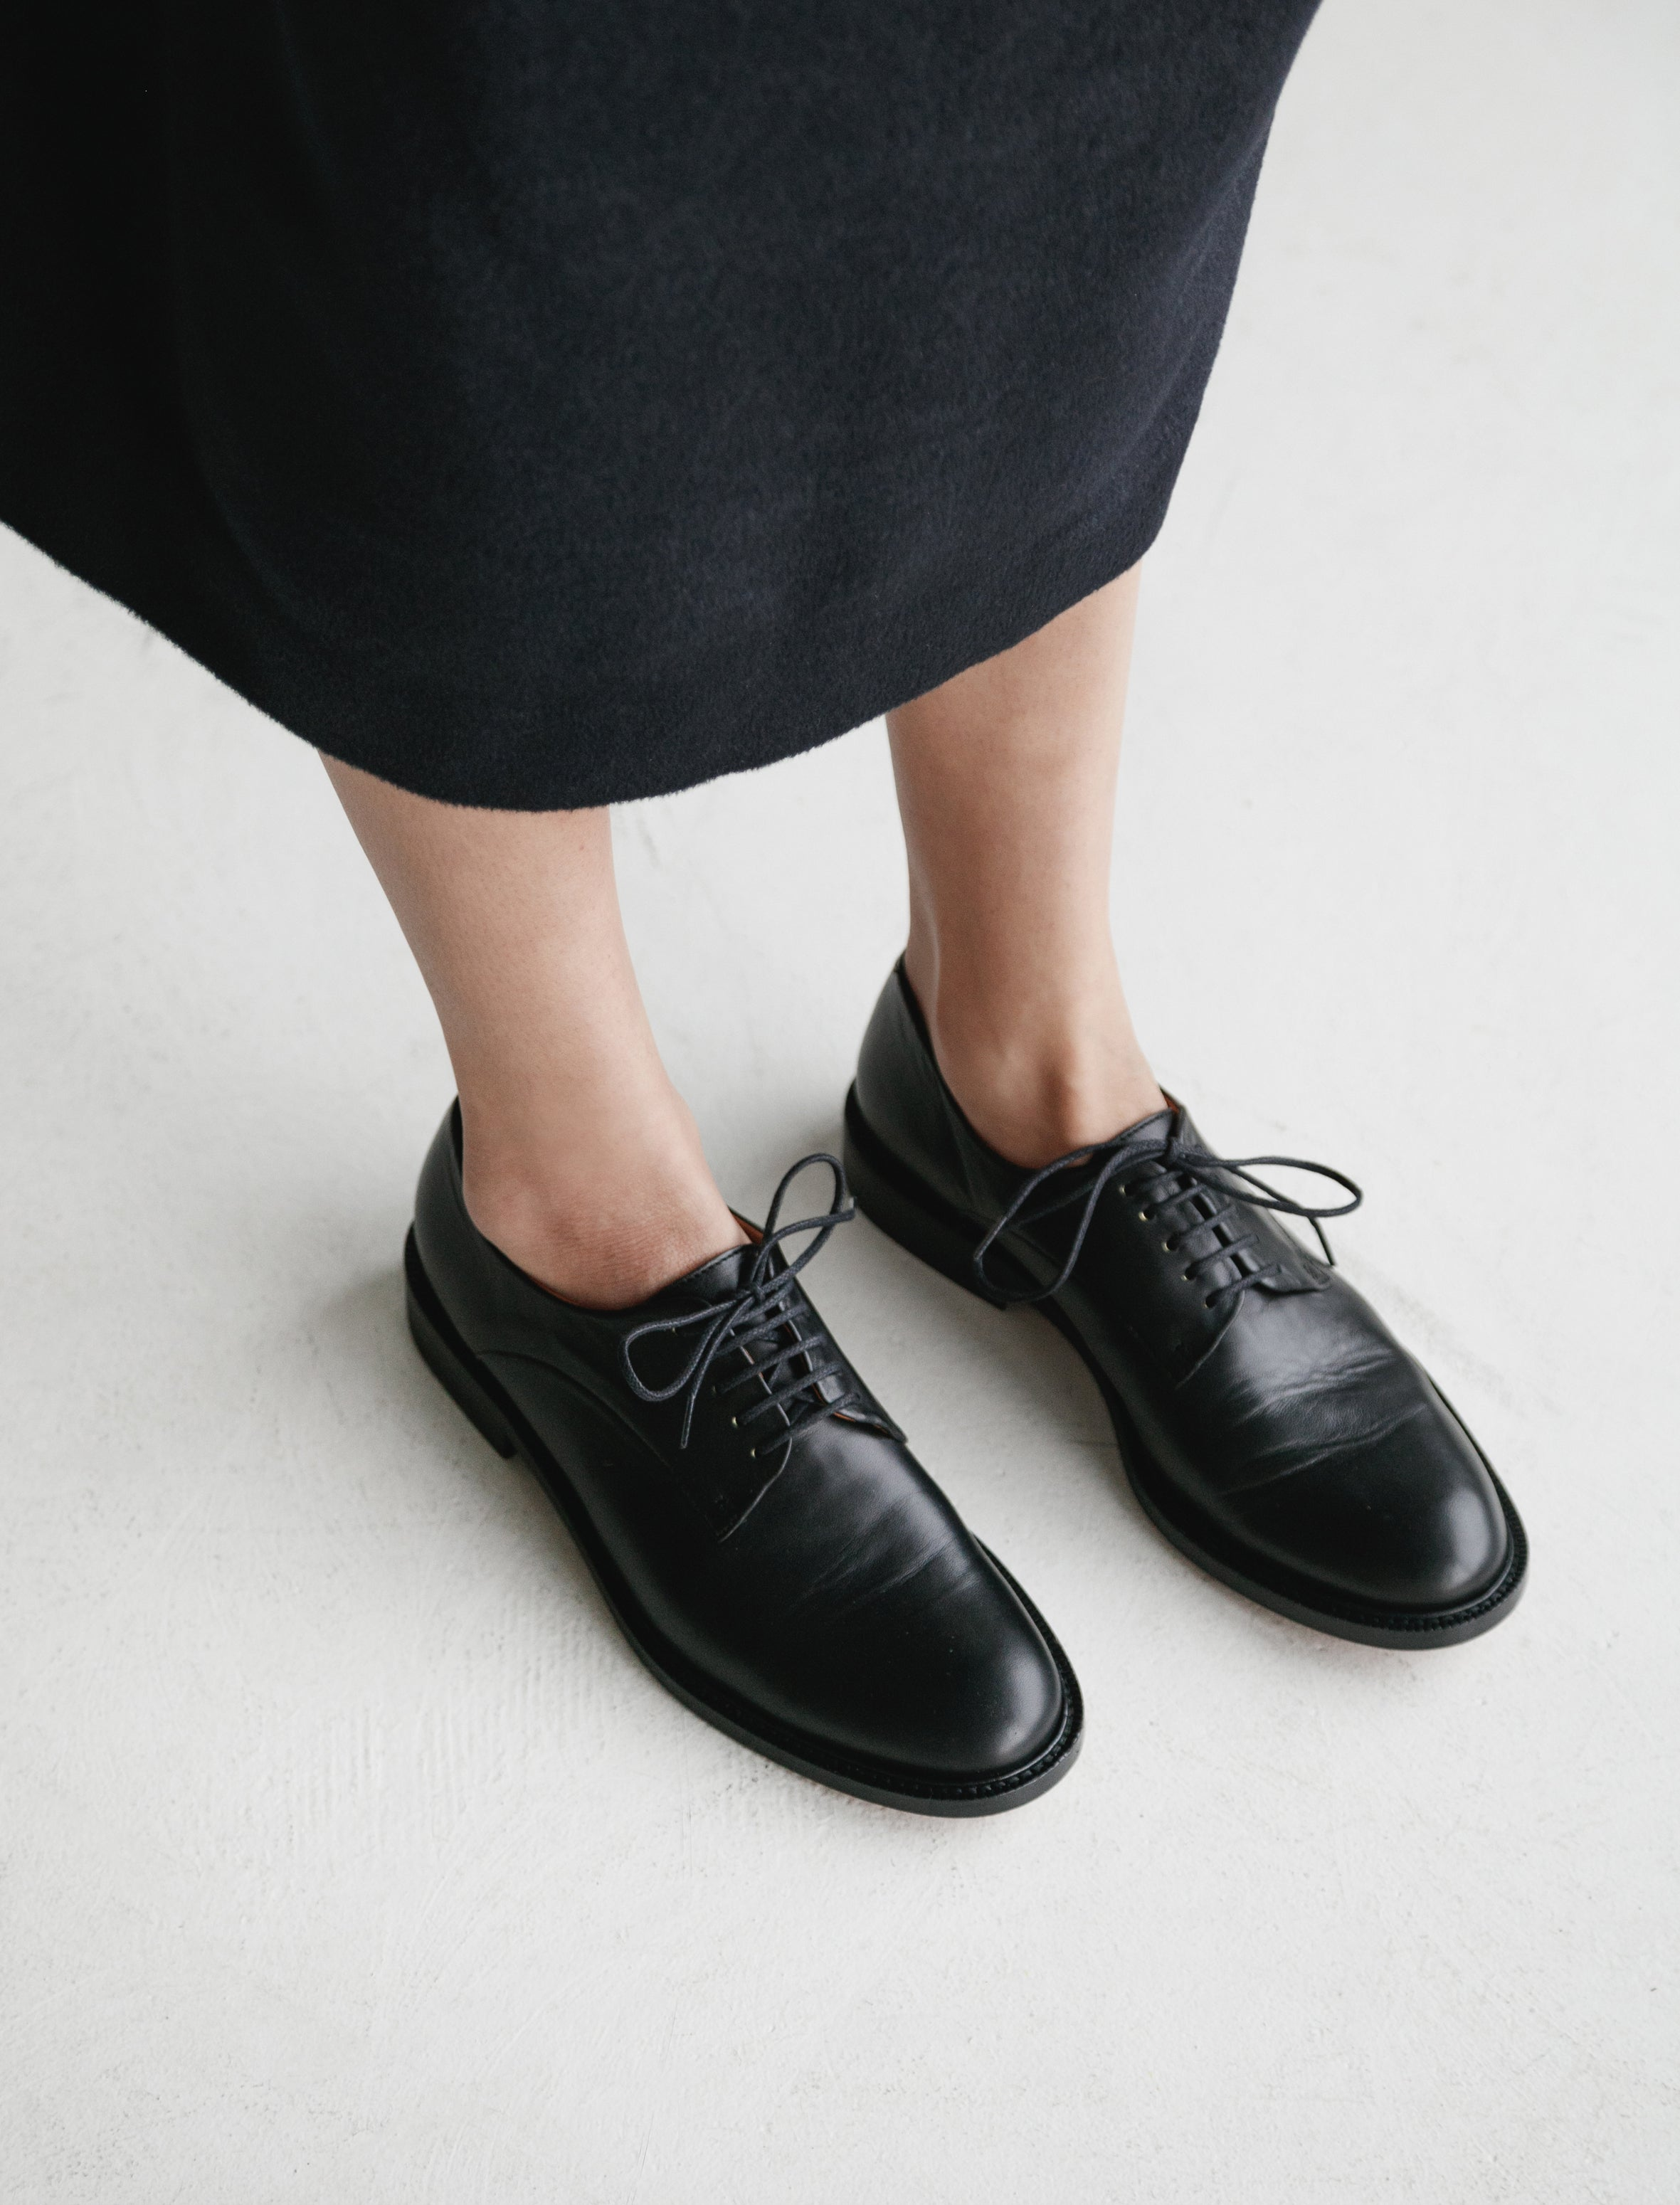 Clergerie Rosie Classic Oxford Black